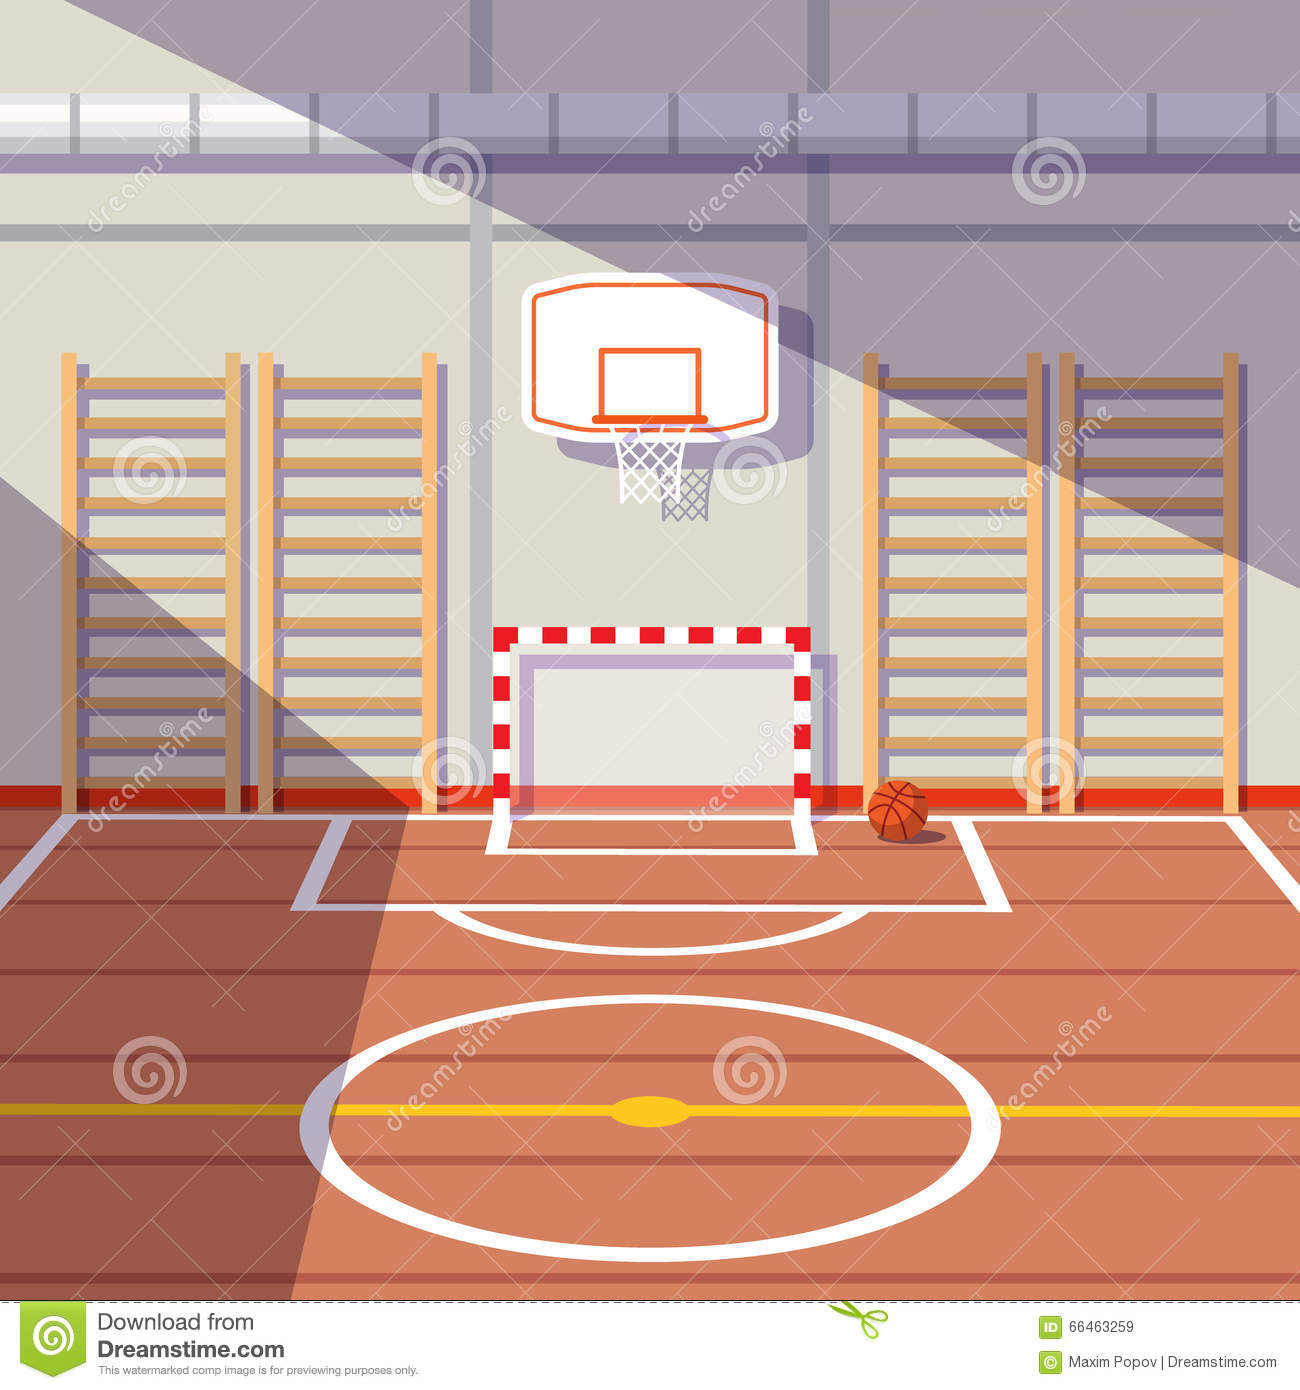 Basketball Gym Floor Plans School Or University Gym Hall Stock Vector Image 66463259